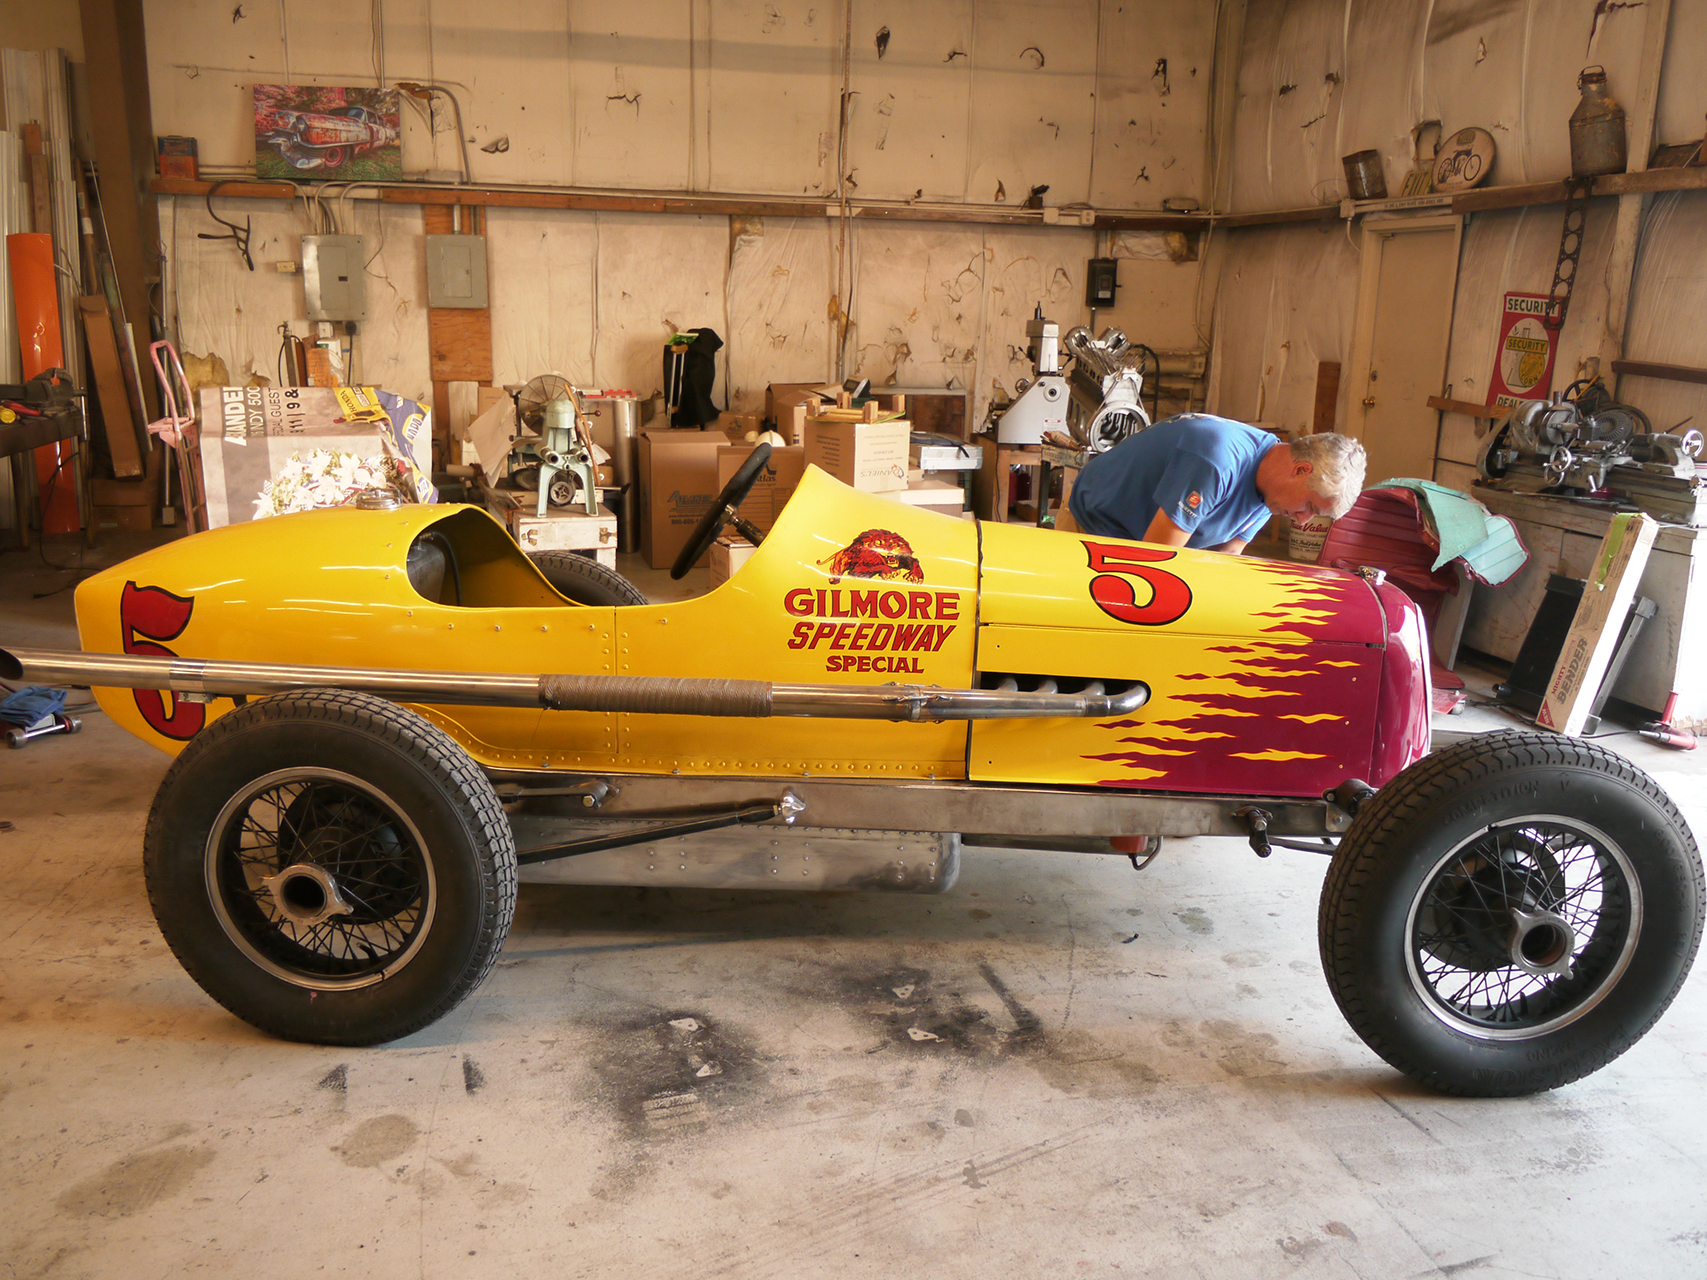 James Long fettles the replica Gilmore Speedway Special.